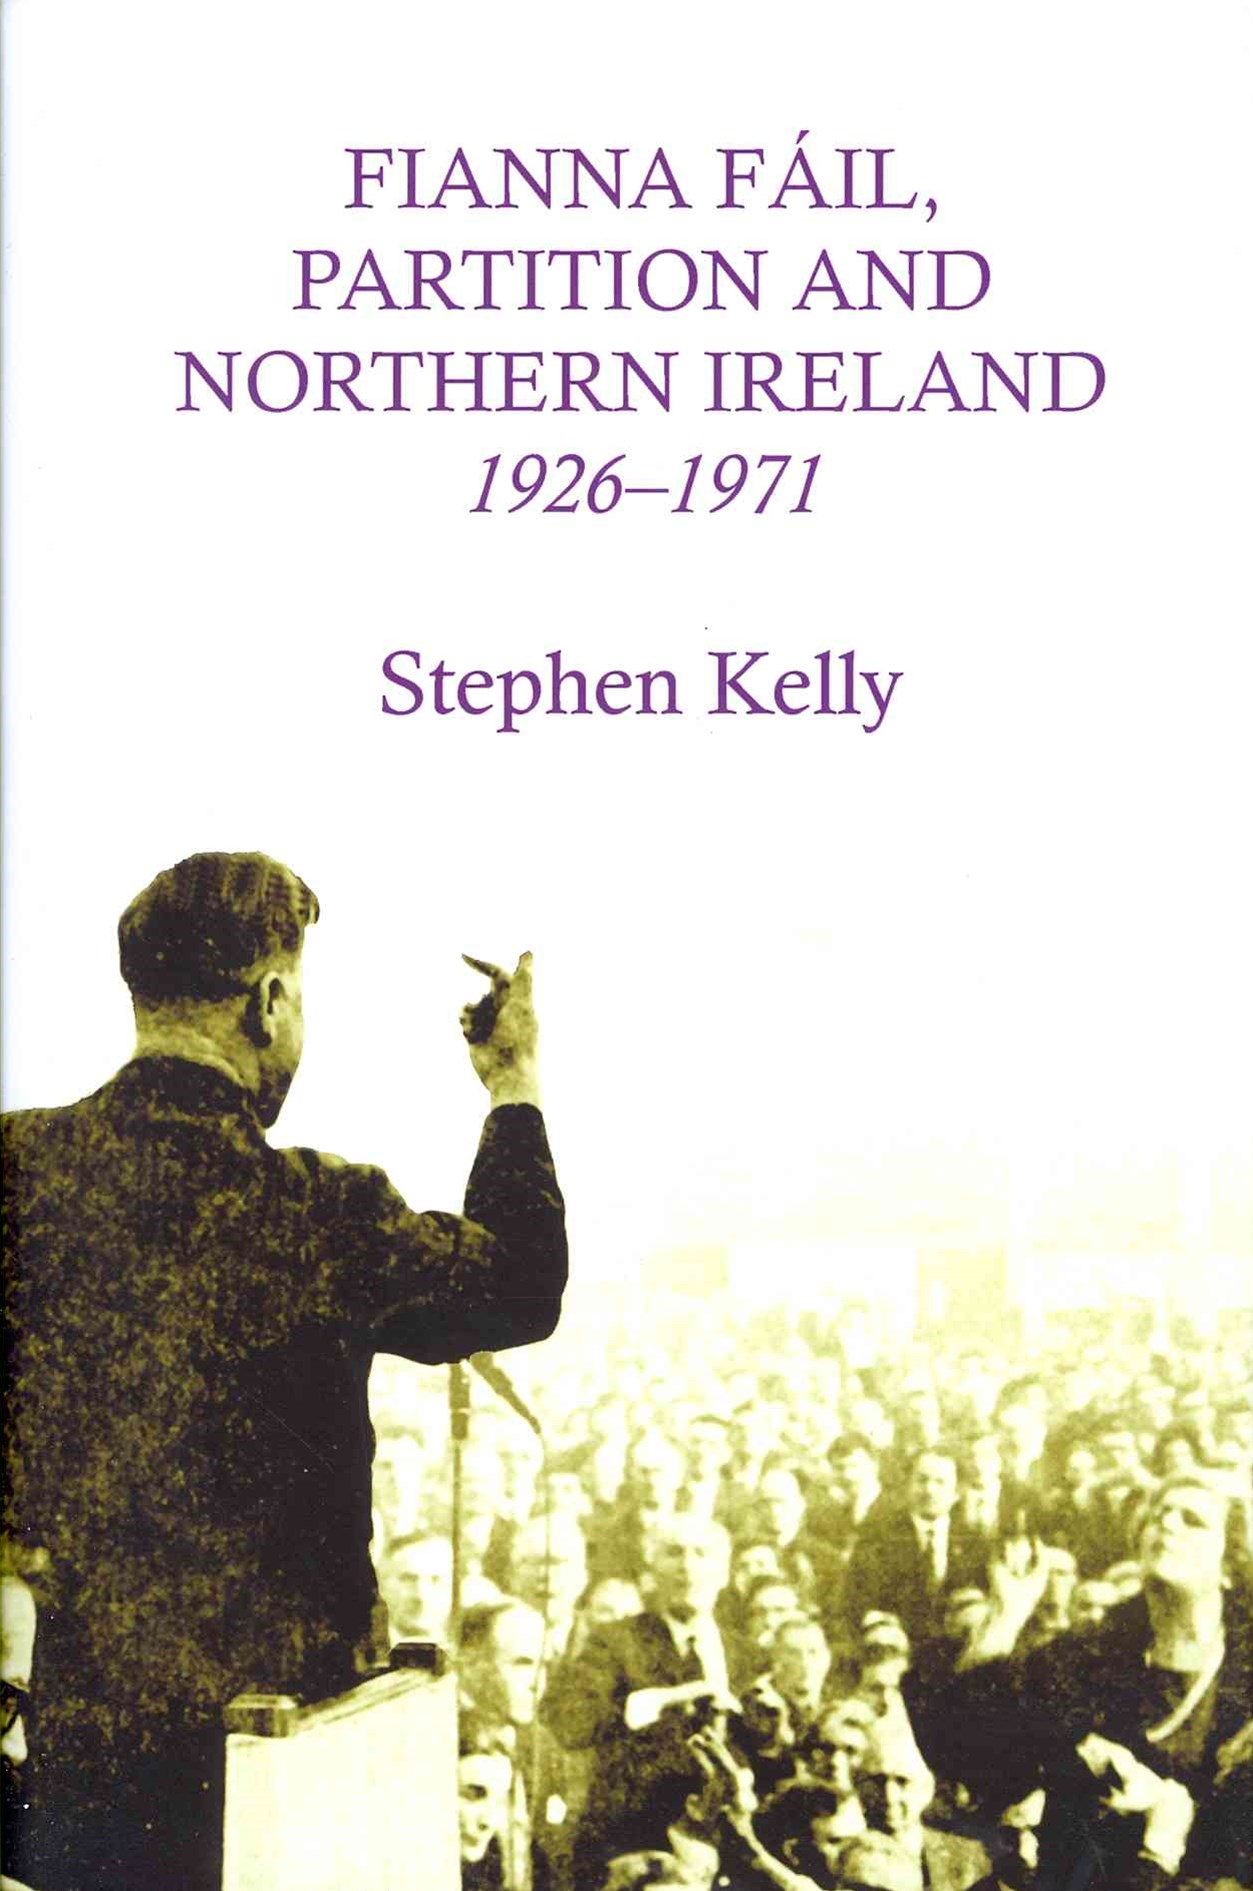 Fianna Fáil, Partition and Northern Ireland,1926-1971